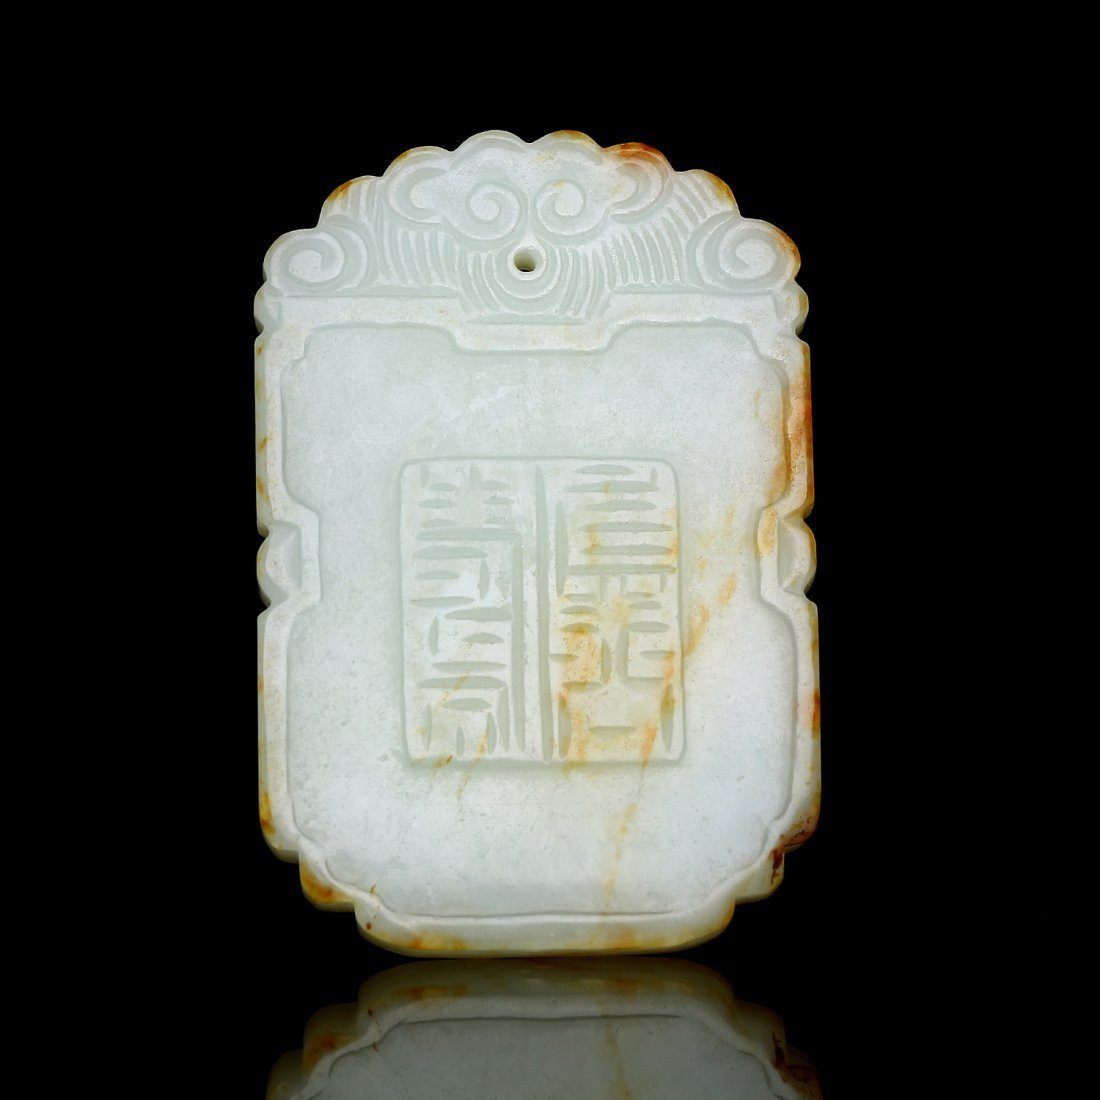 Chinese Qing Dynasty Hetian White Jade Pendant - 2